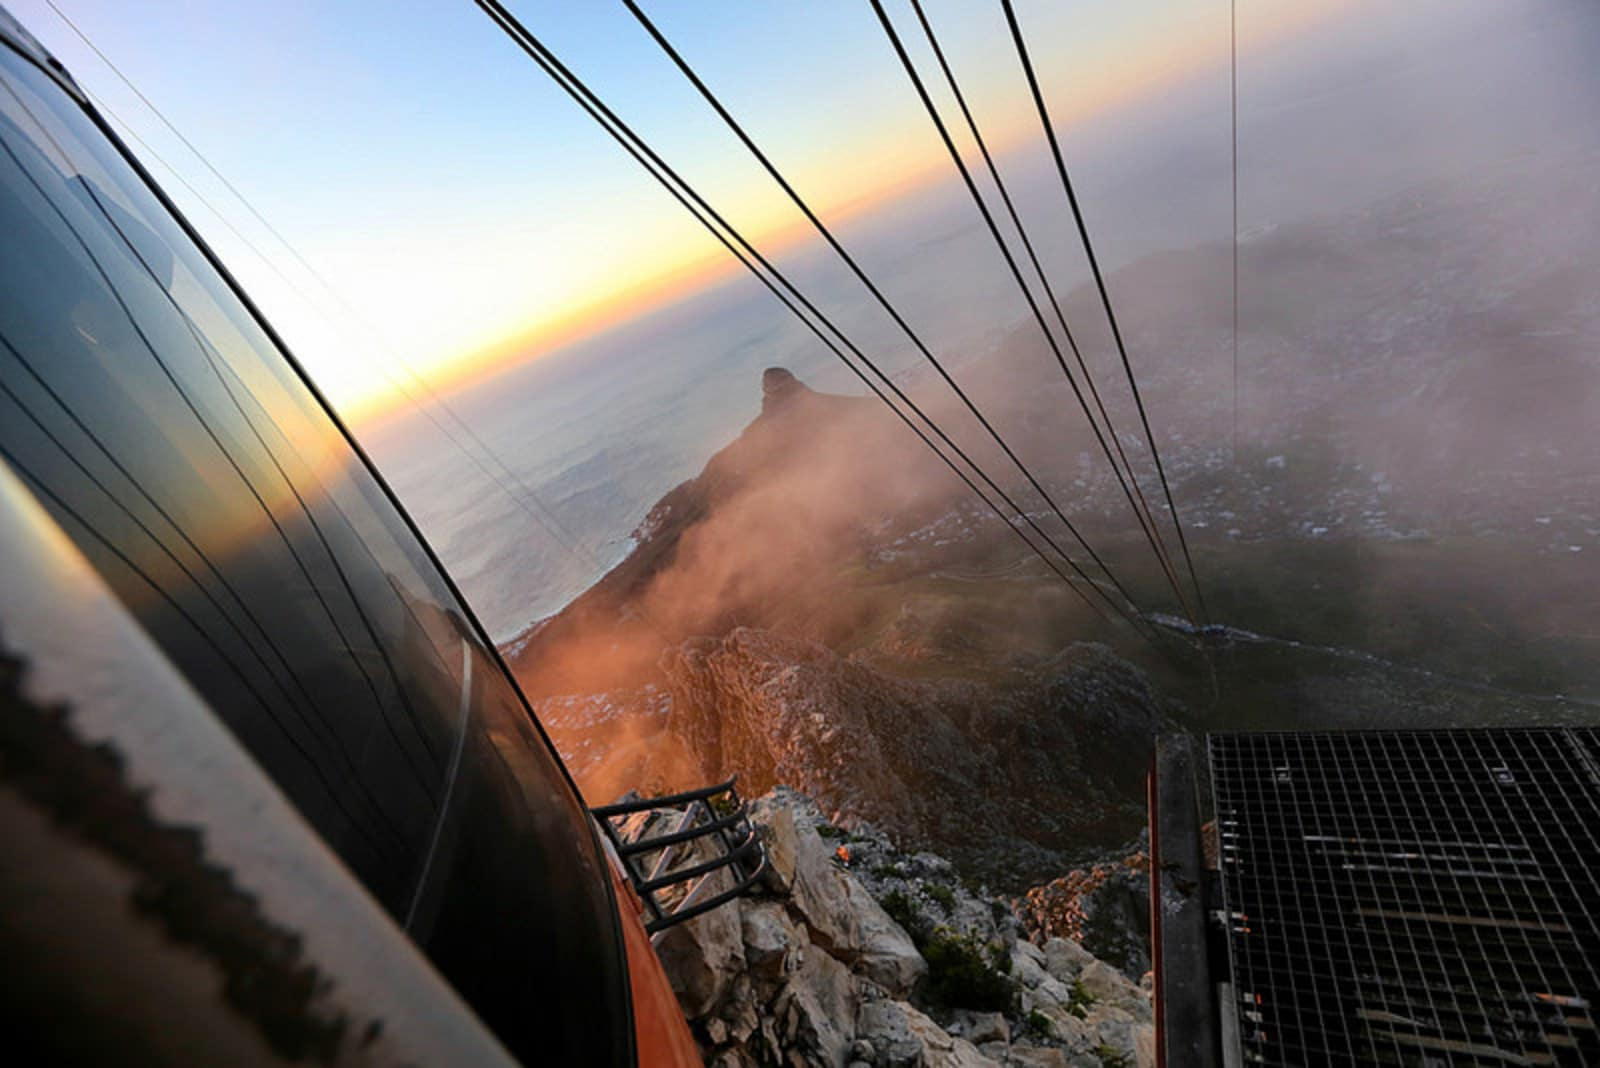 The view from Table Mountain, Cape Town, during sunset